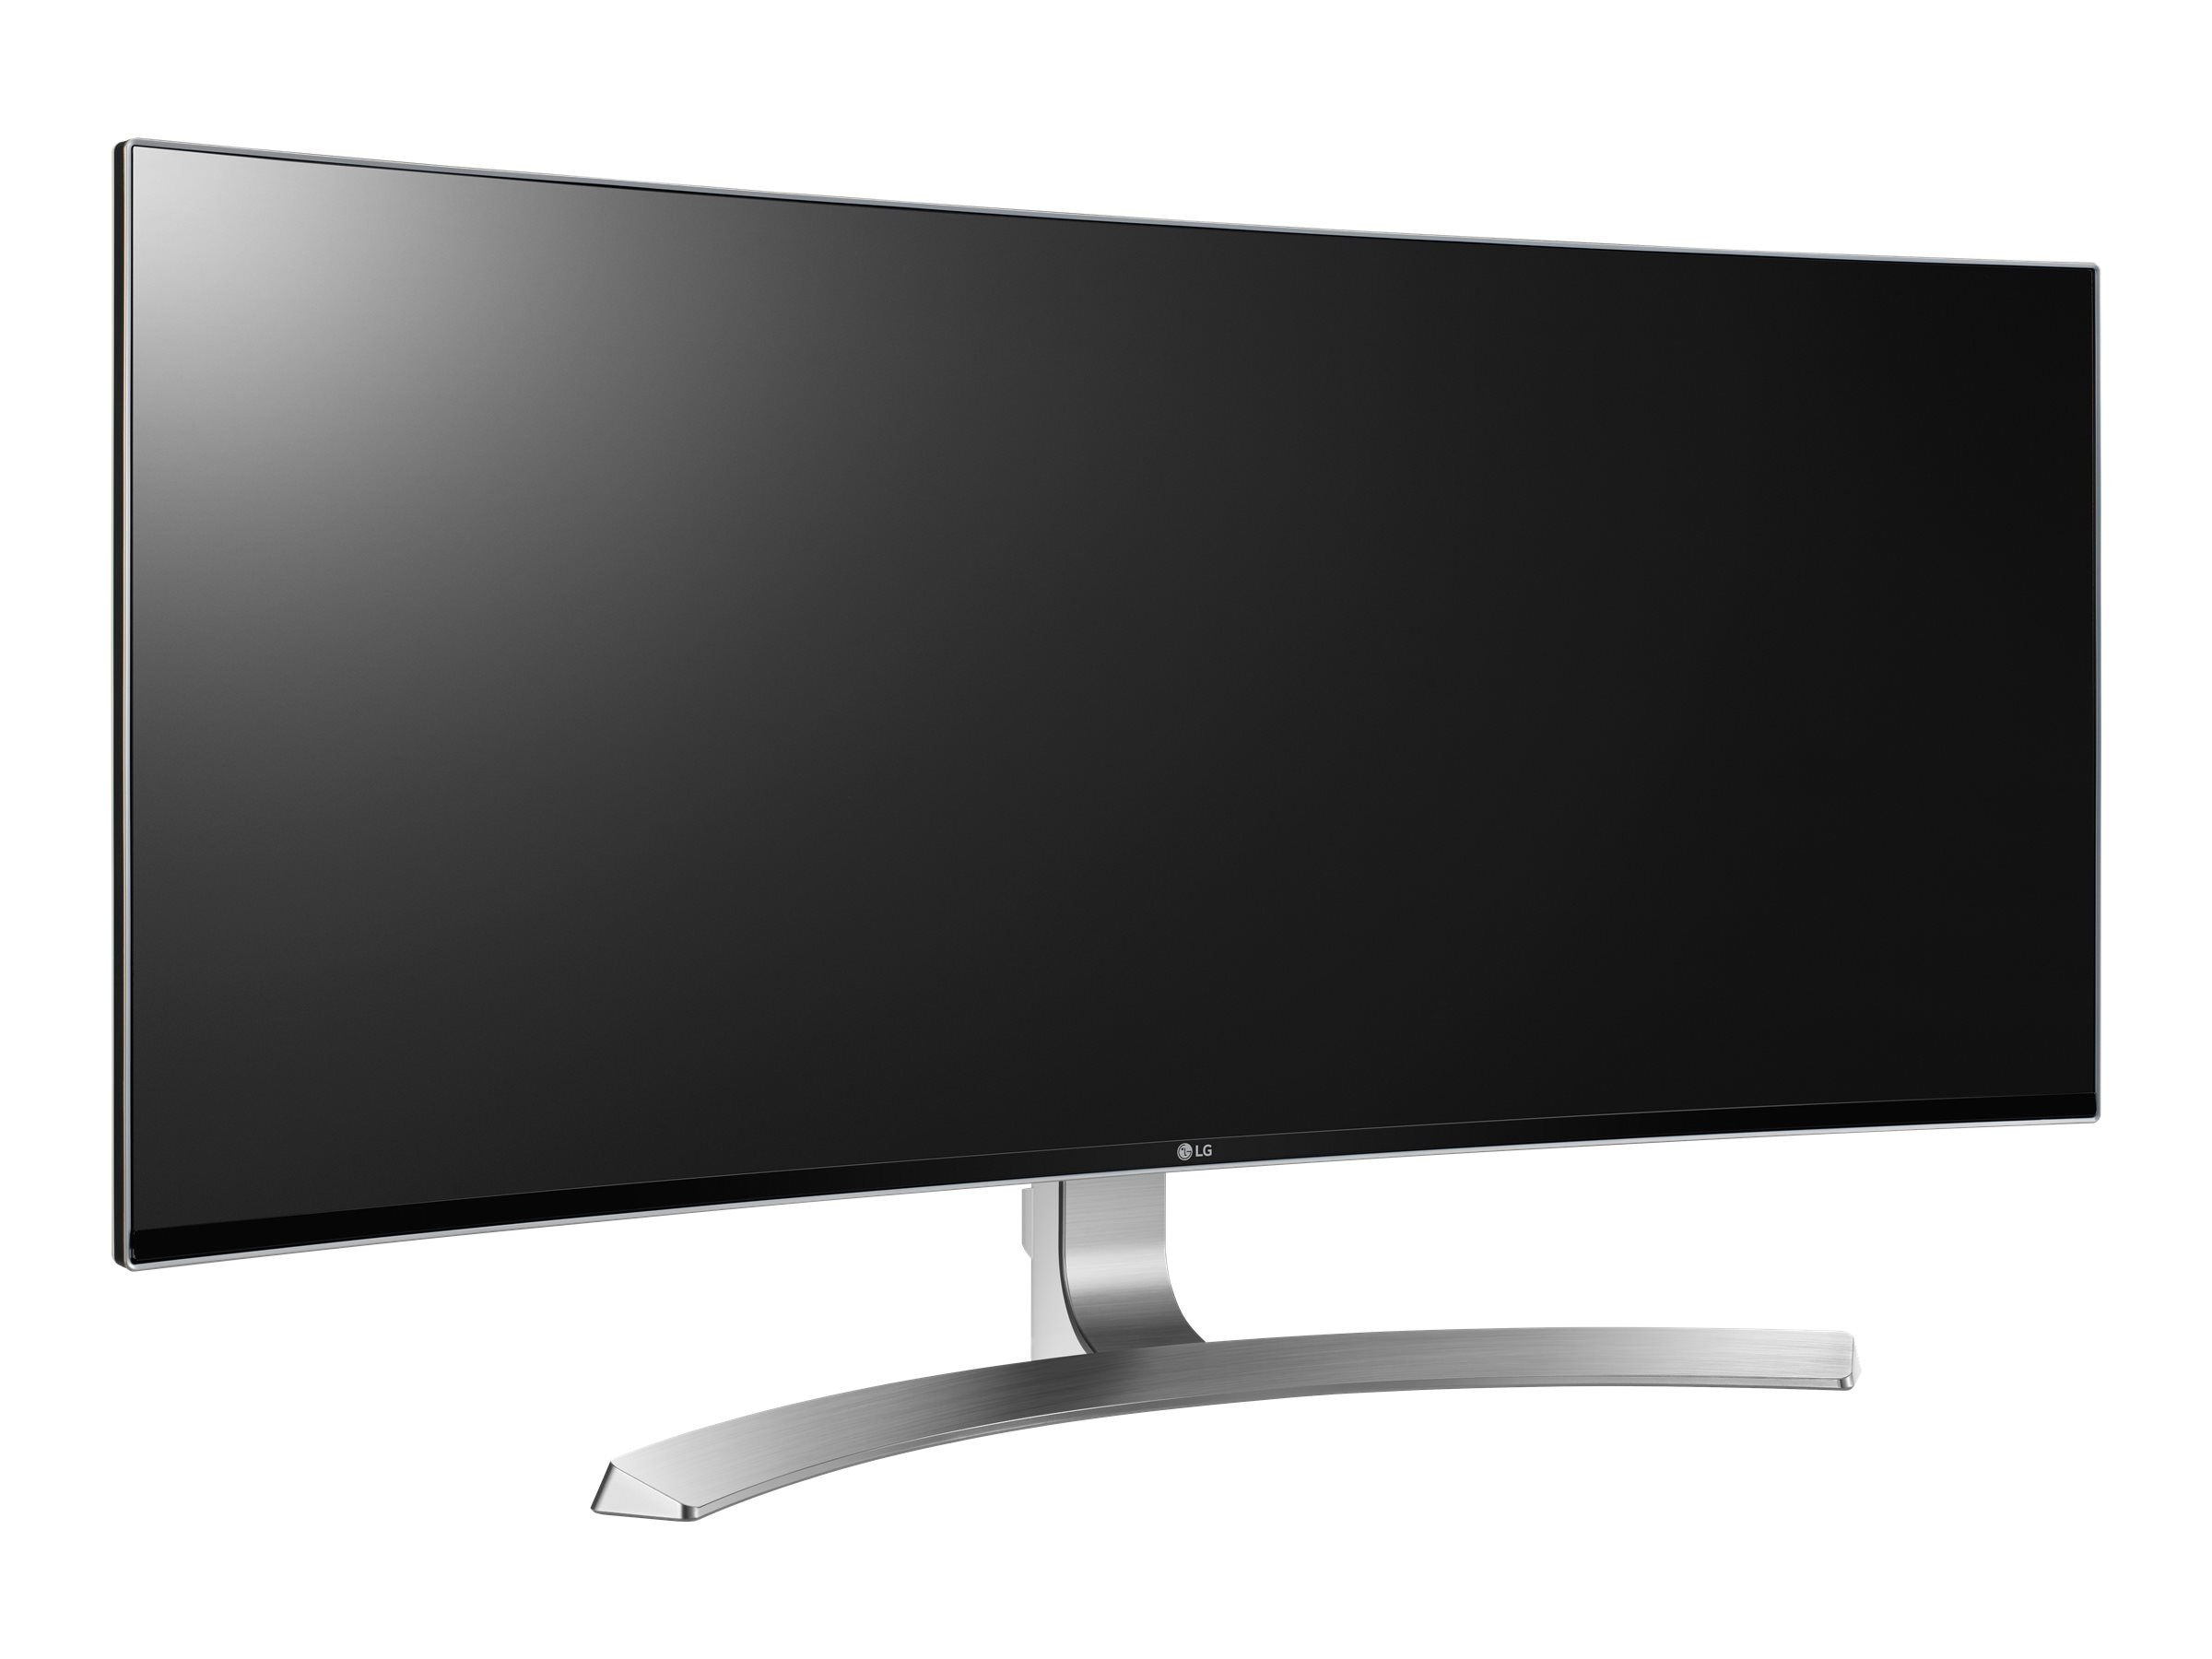 LG 34 UC98-W WQHD LED-LCD UltraWide Curved Monitor, Black, 34UC98-W